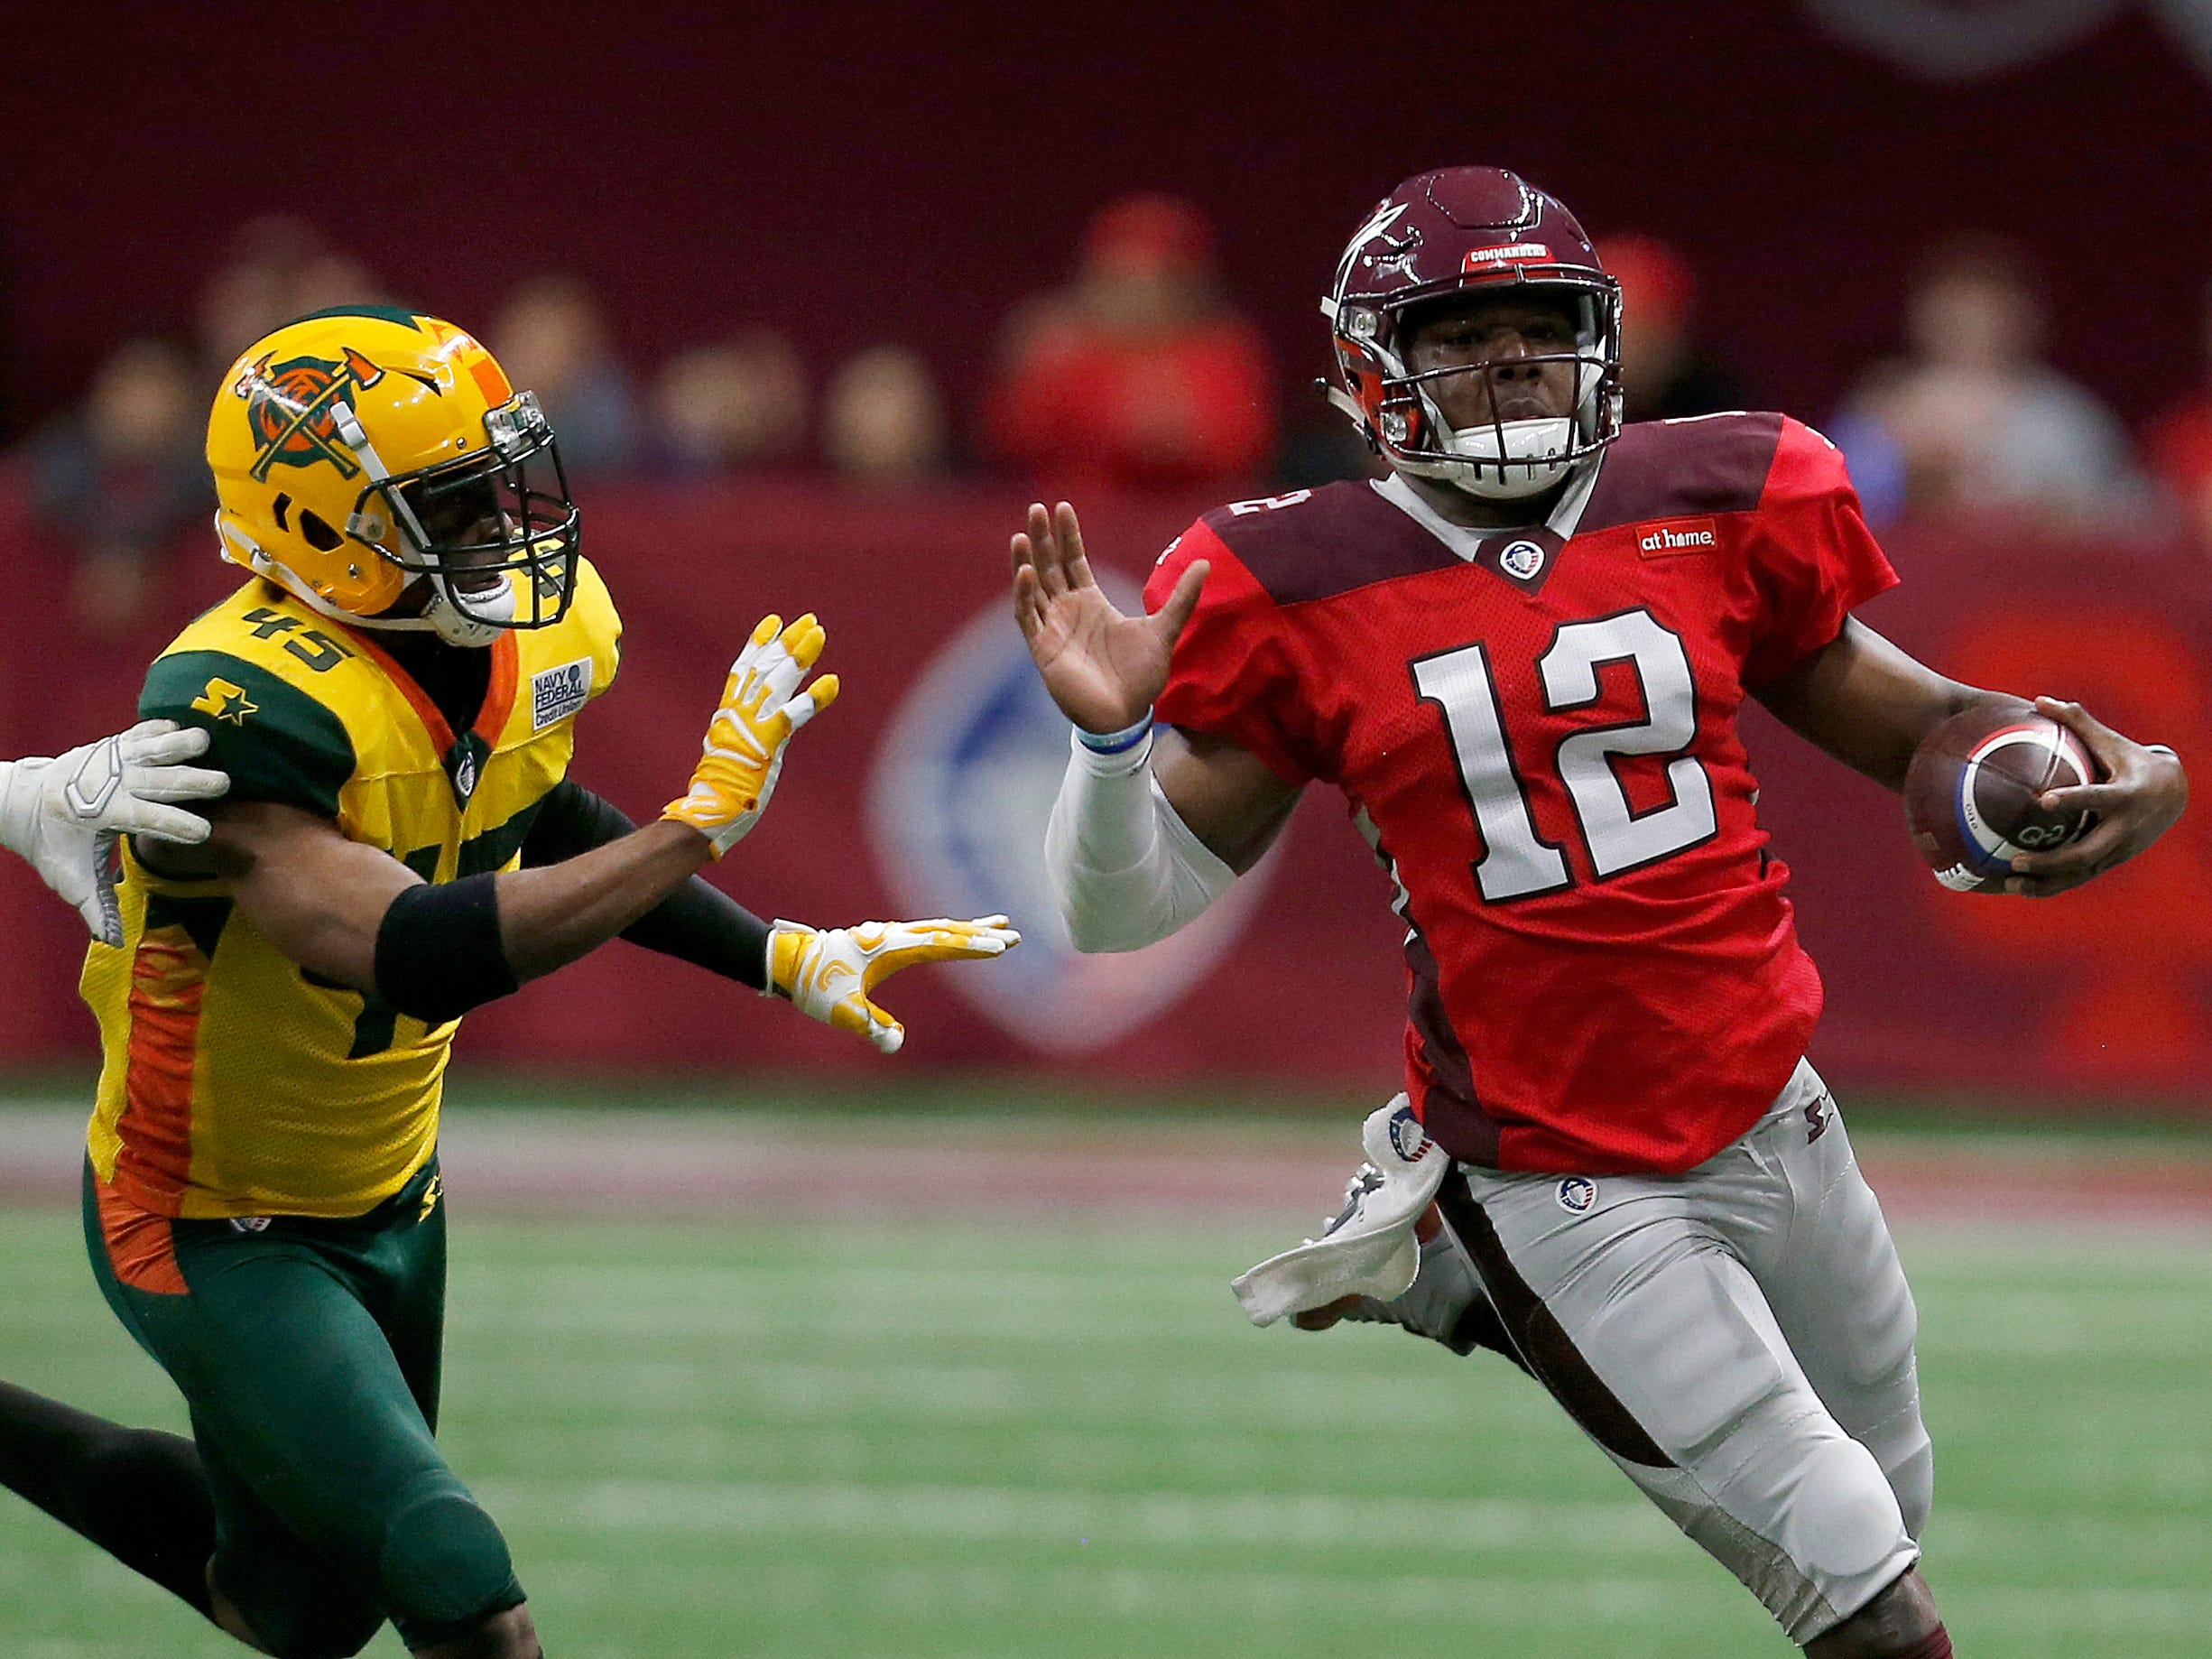 San Antonio Commanders quarterback Marquise Williams (12) runs the ball past Arizona Hot Shots defensive back Rahim Moore (45) in the first half during an Arizona Hotshots at San Antonio Commanders AAF football game, Sunday, March 31, 2019, at the Alamodome in San Antonio.